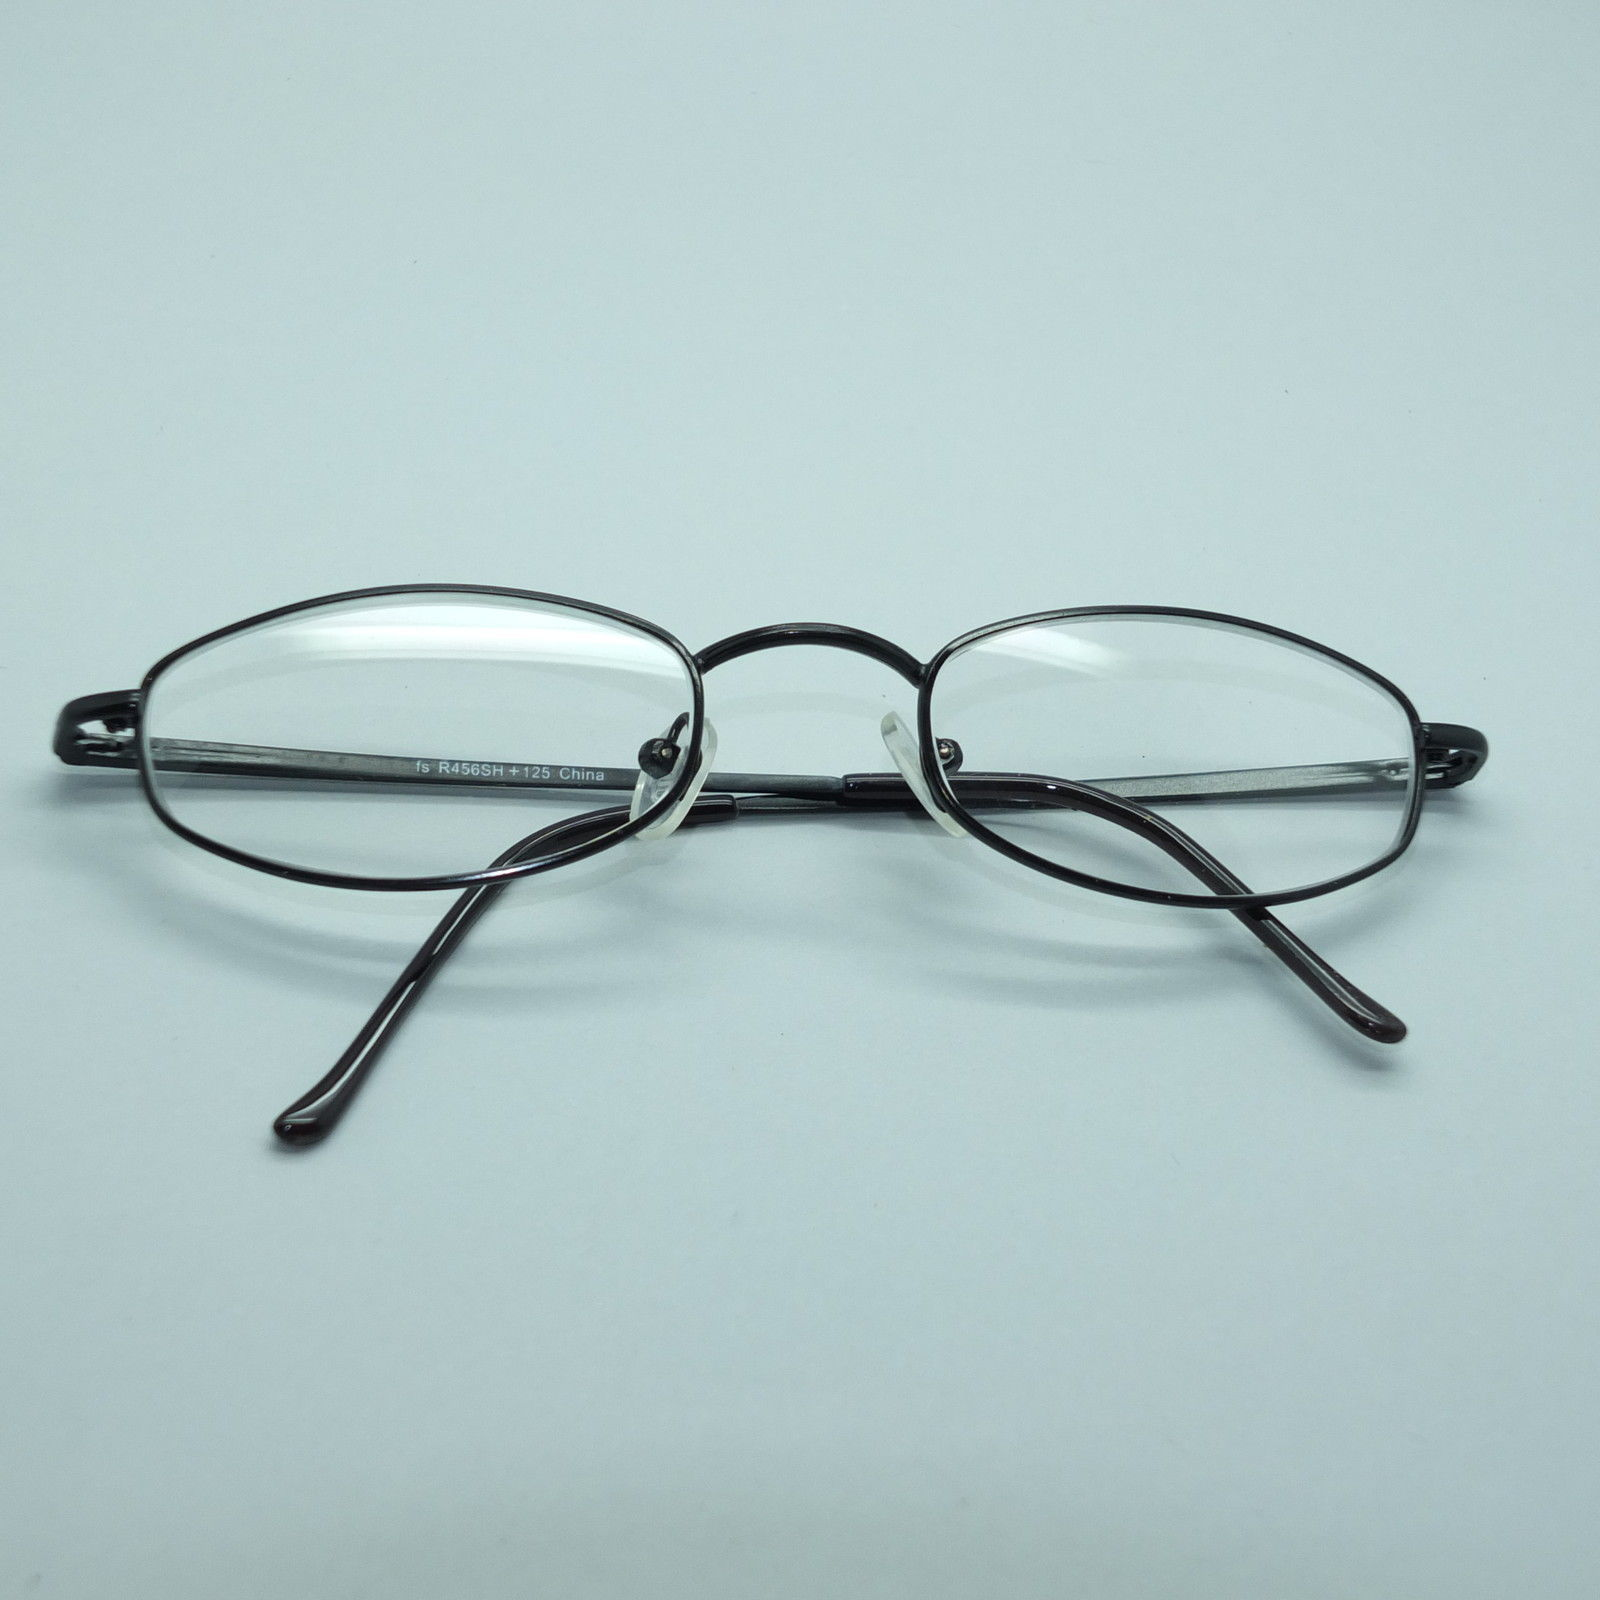 Gray Frame Reading Glasses : Reading Glasses Shiny Gray Wire Narrow Oval Metal Frame ...